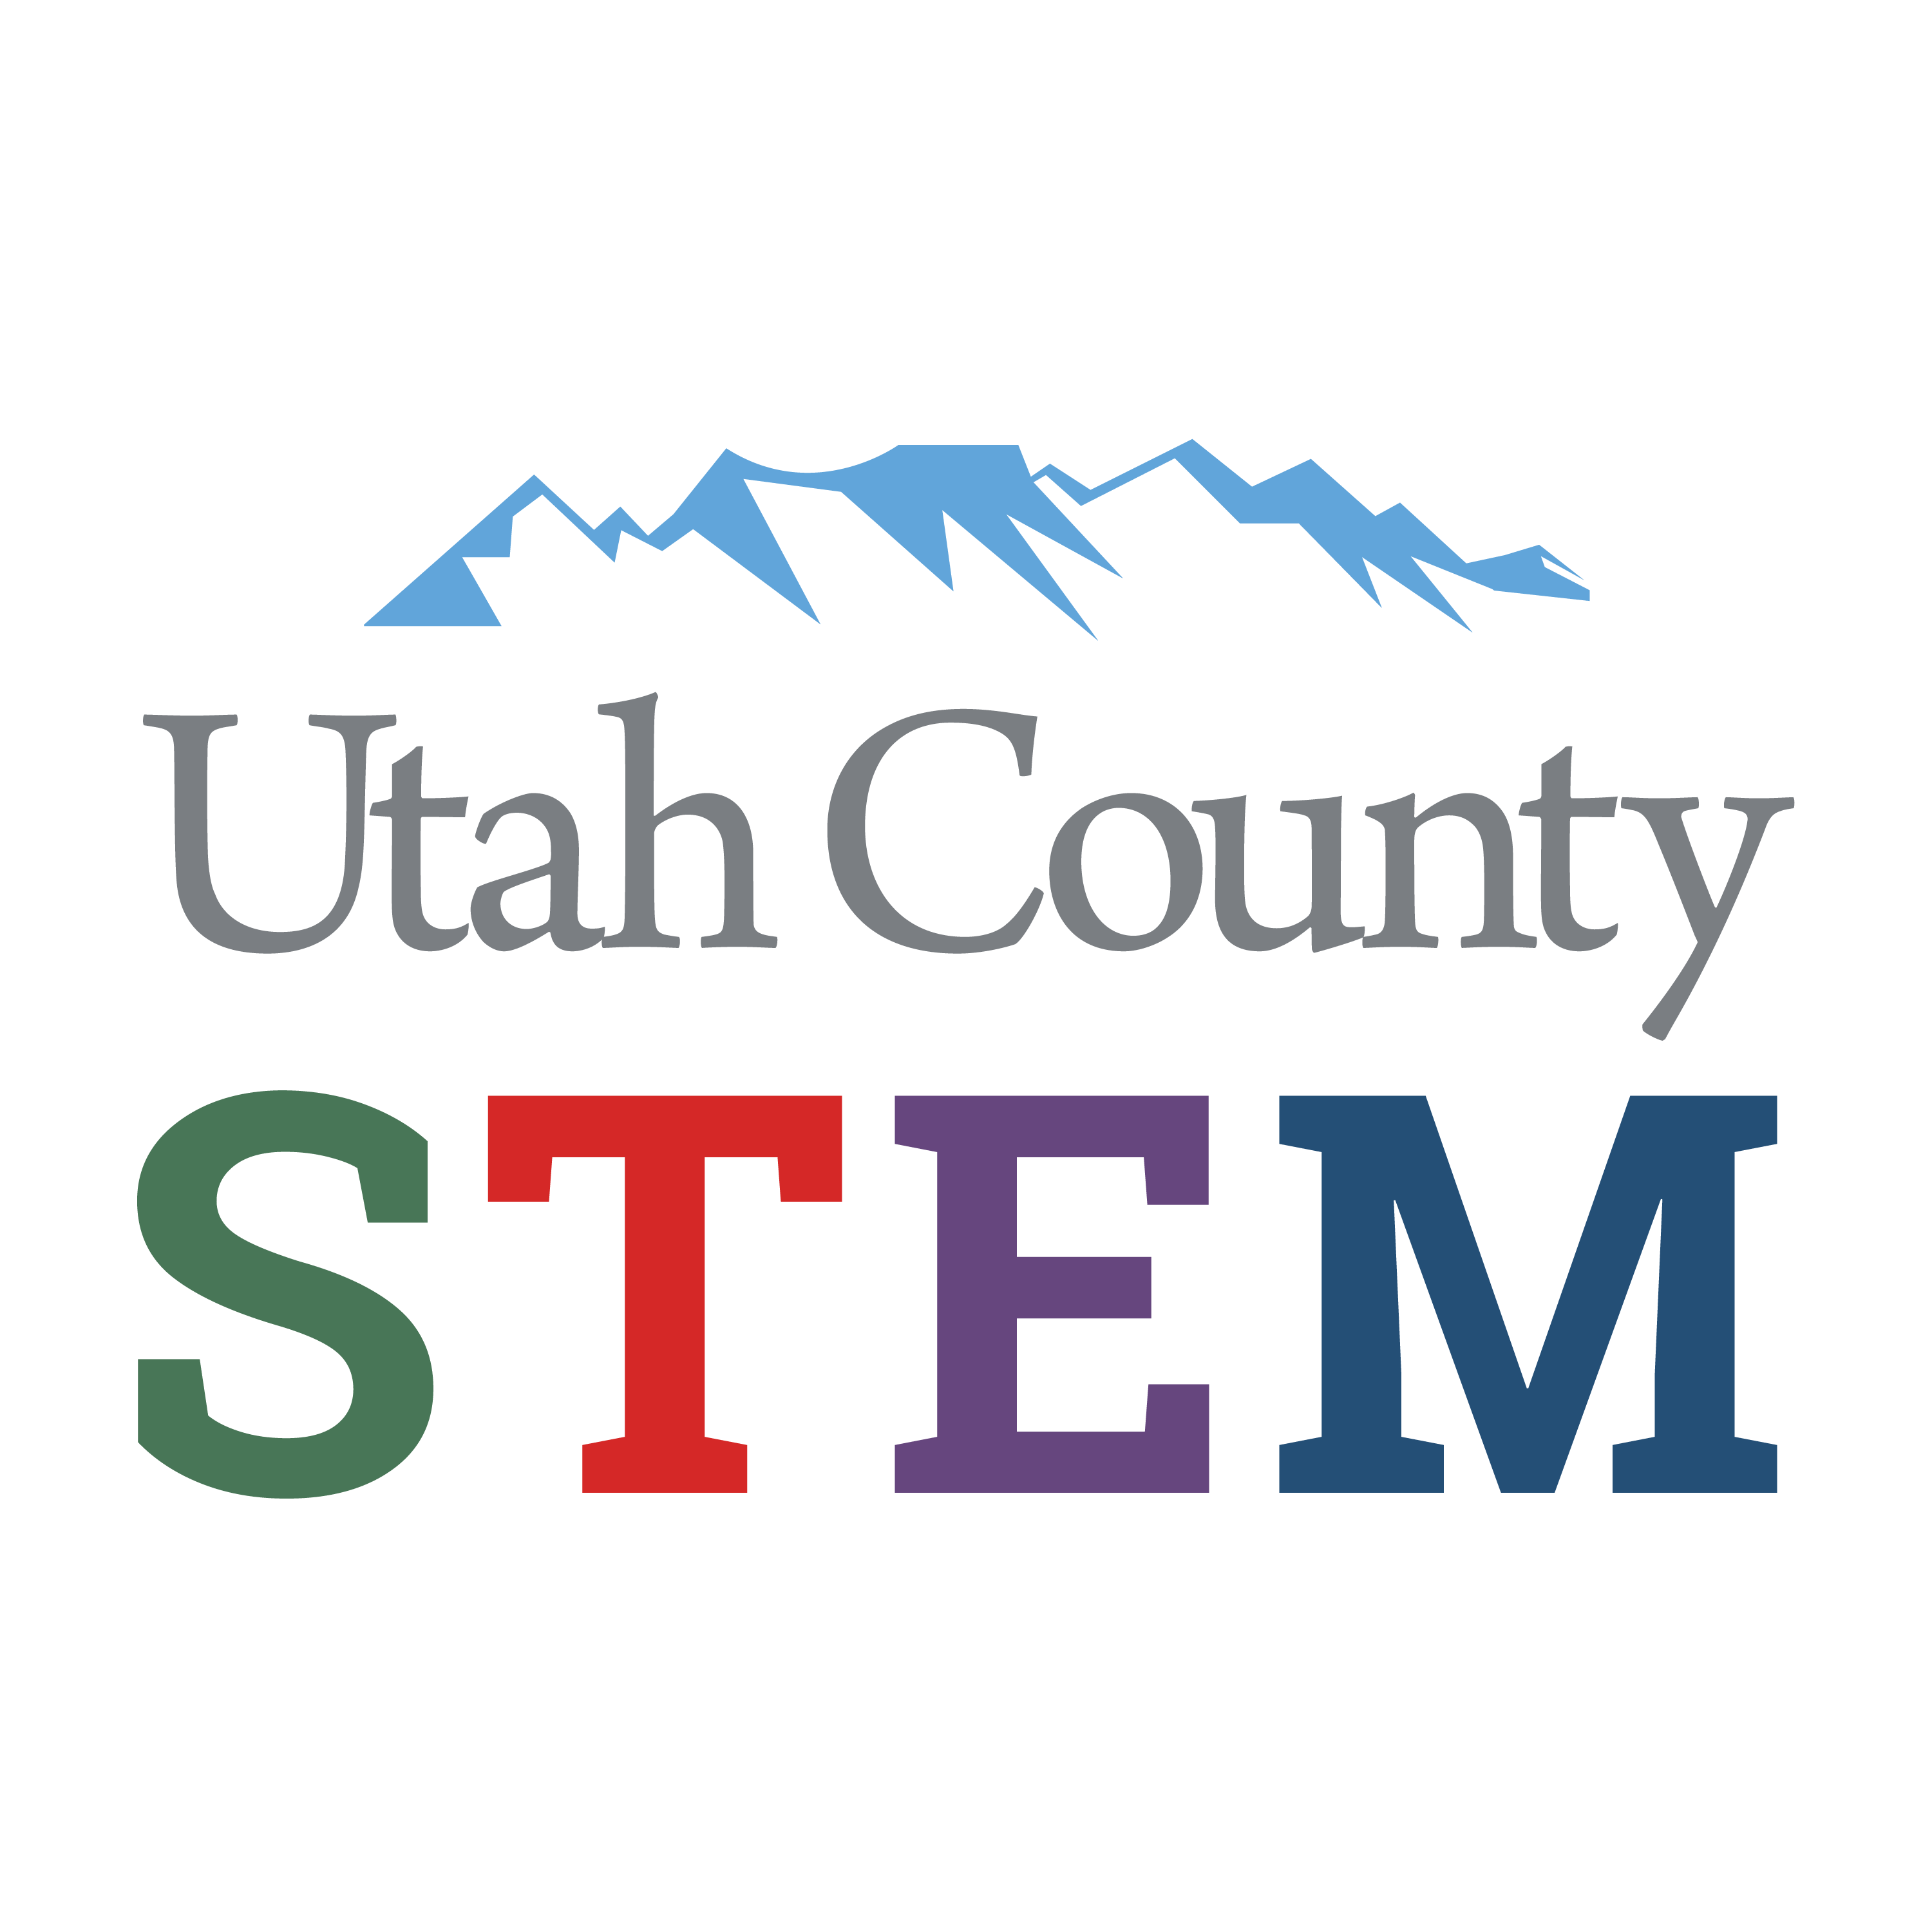 Utah County STEM logo